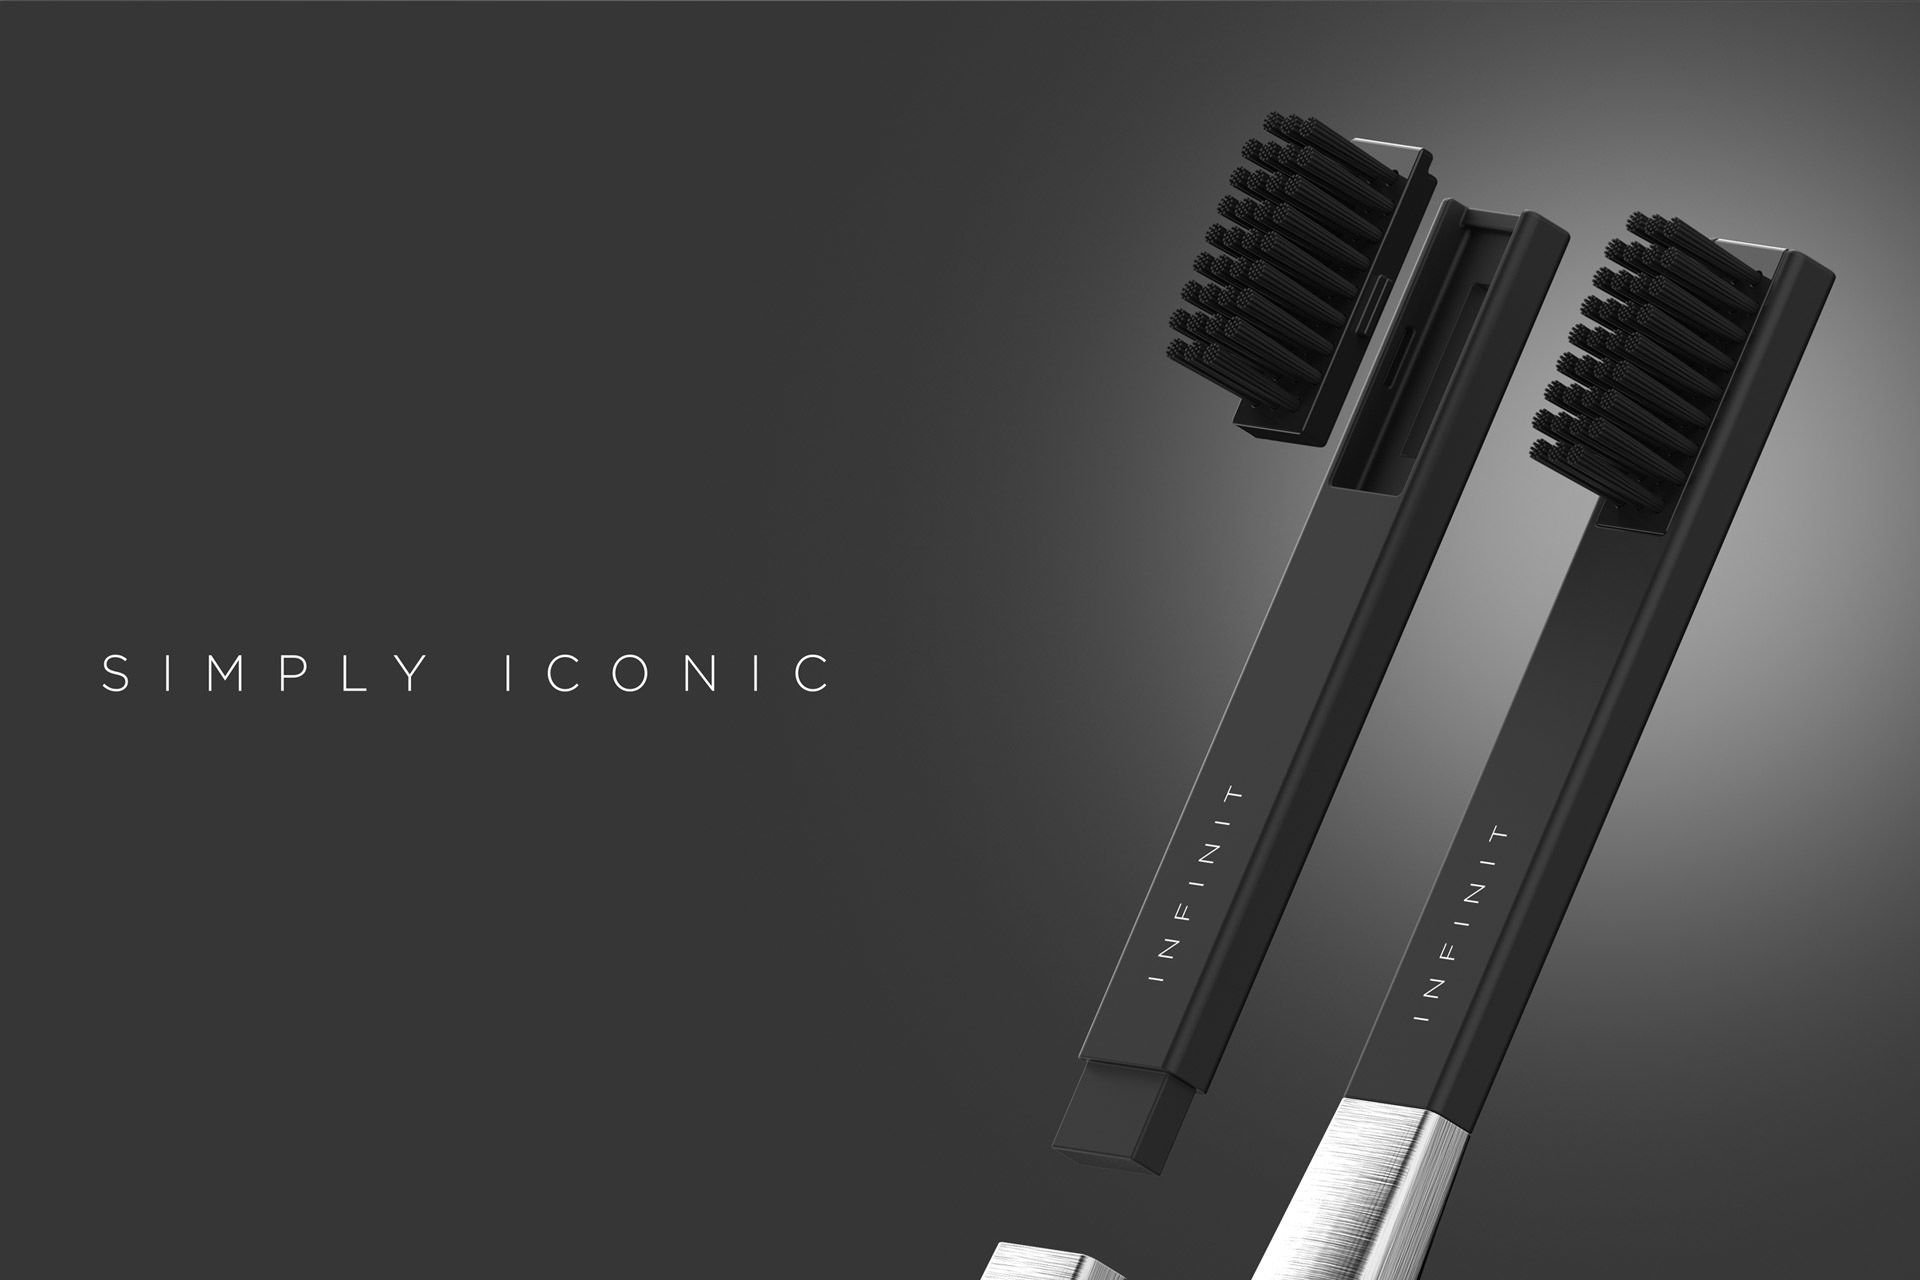 nespresso design competition sustainable toothbrush infinit has